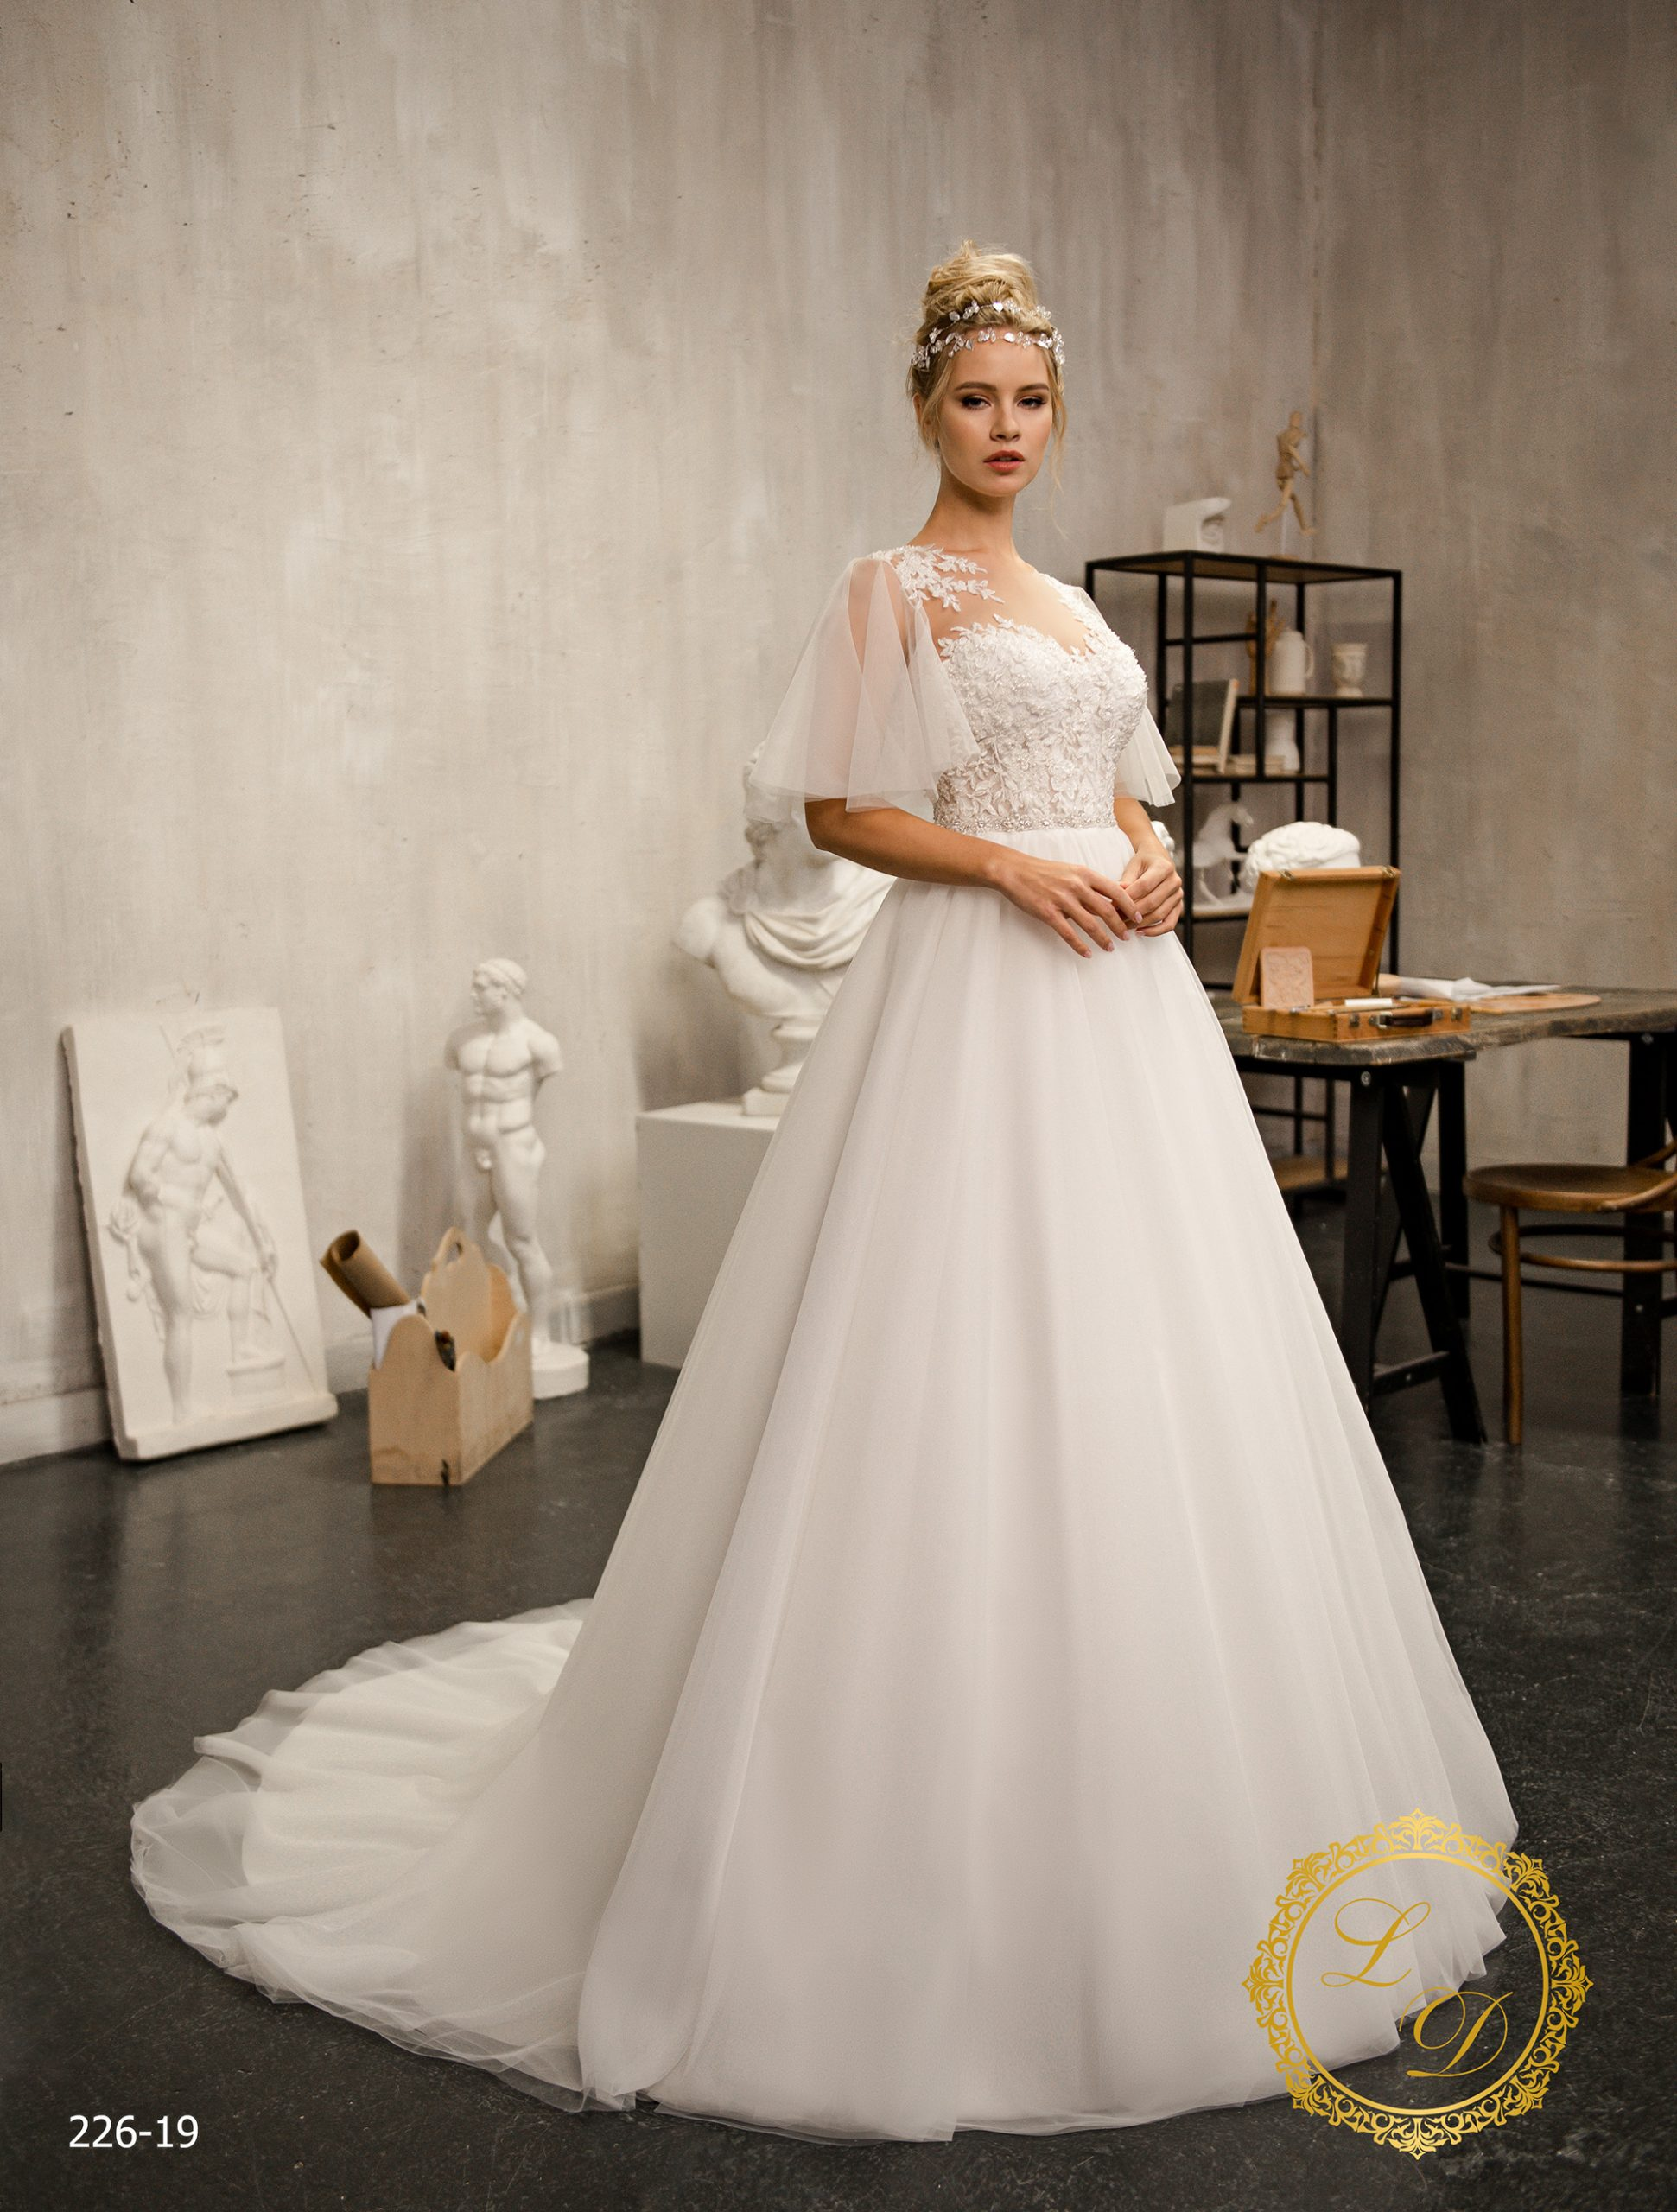 wedding-dress-226-19-1